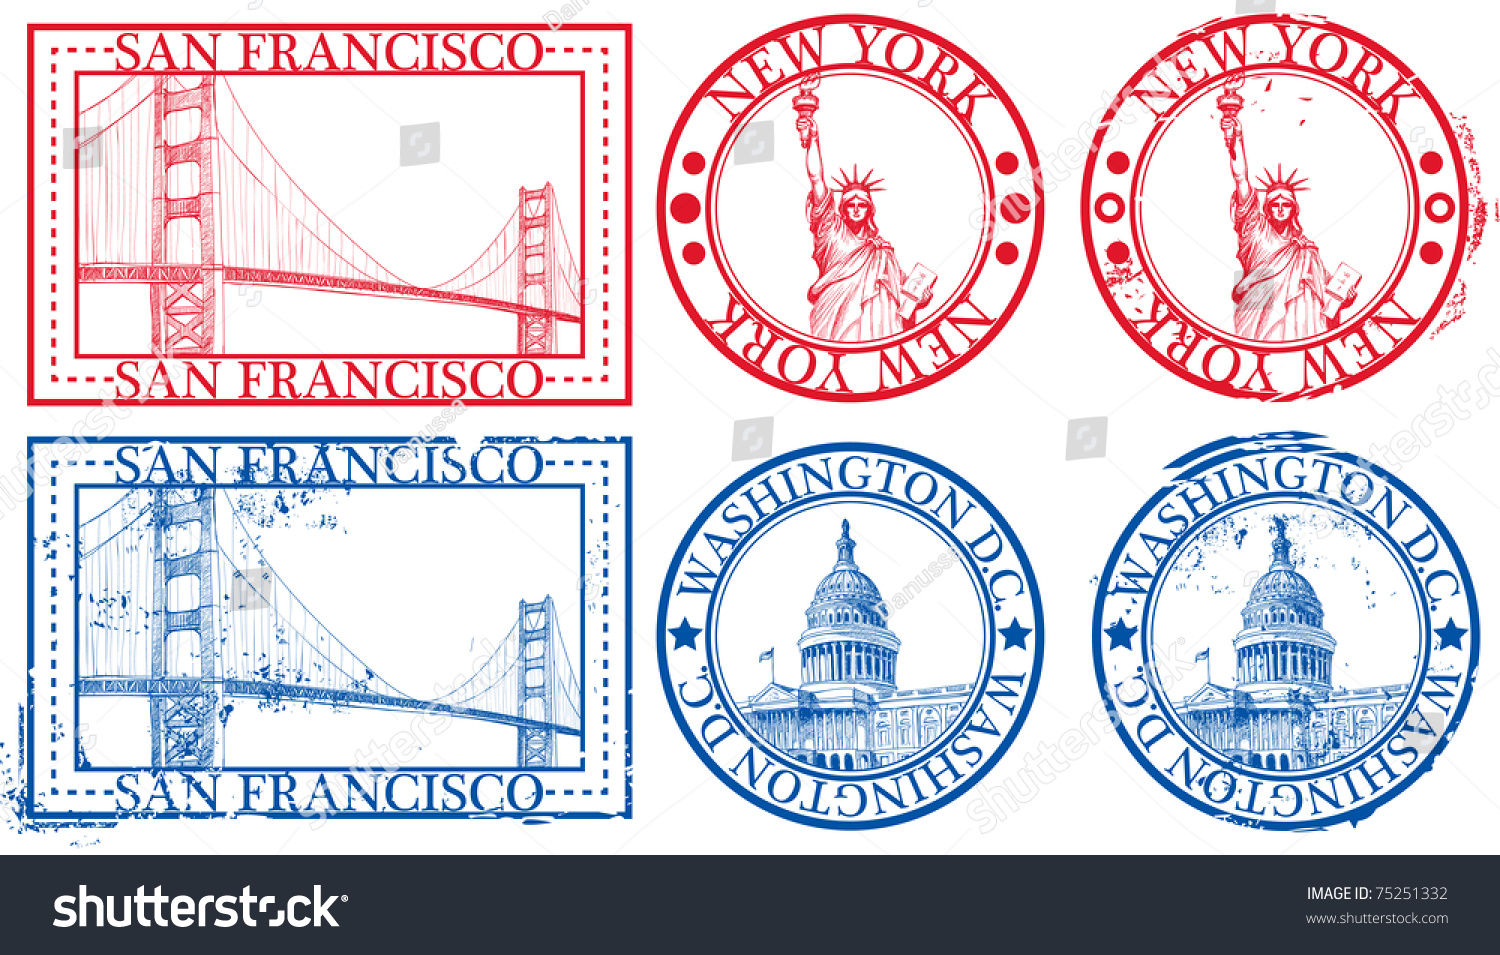 Usa famous cities stamps symbols new stock vector 75251332 for New york state architect stamp